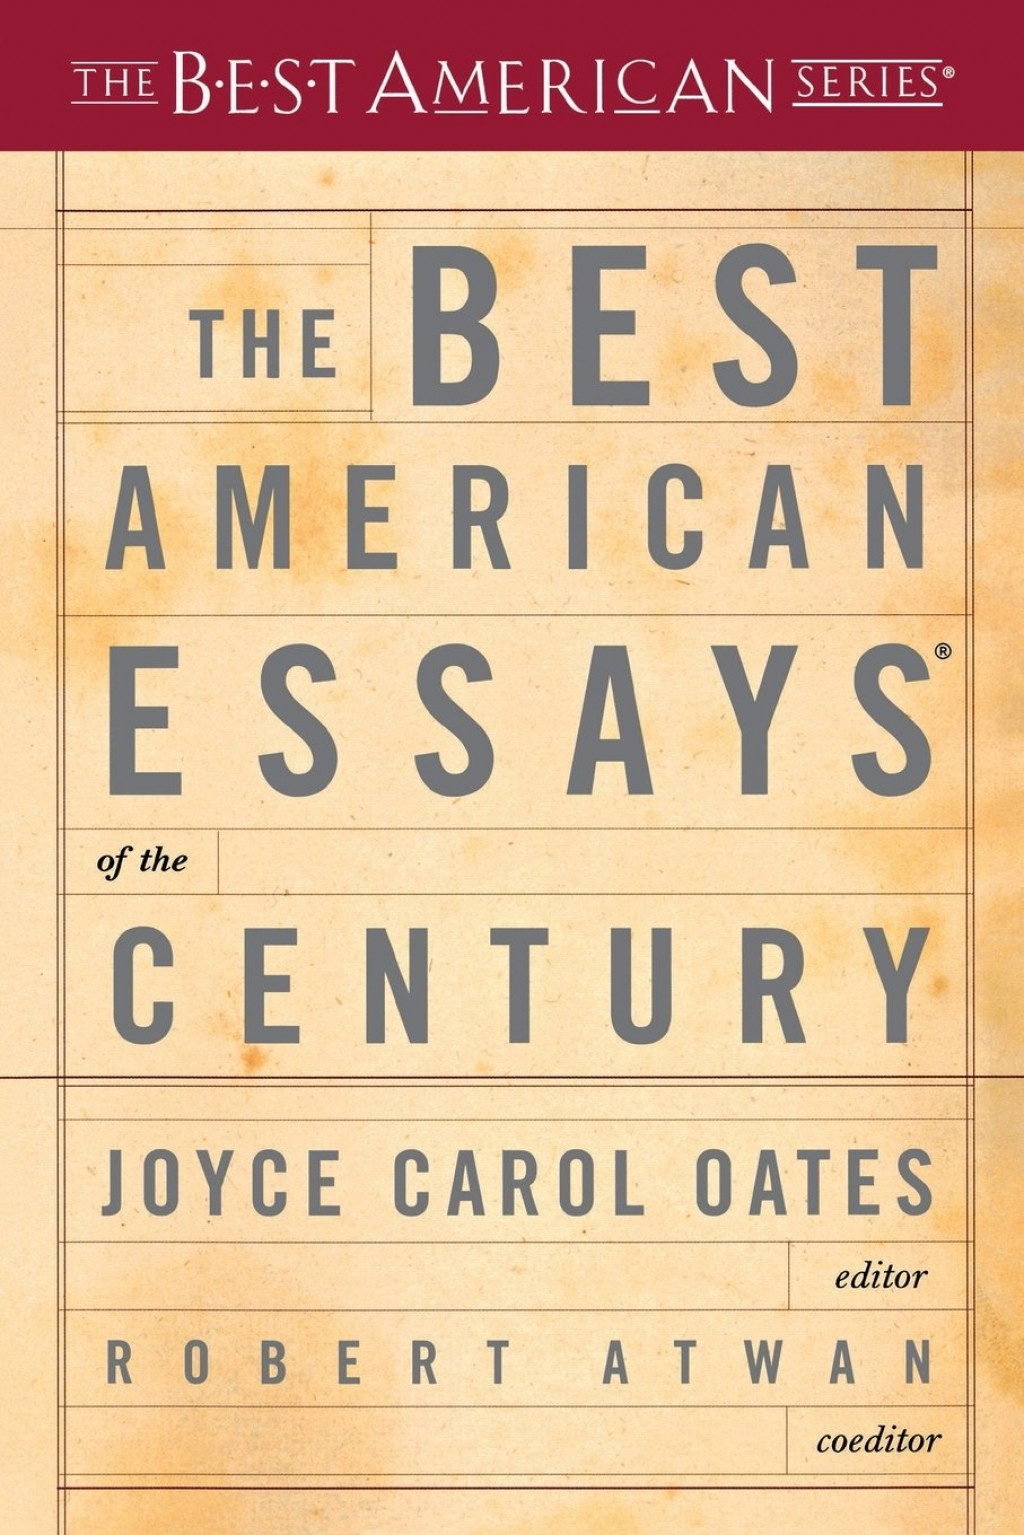 002 The Best American Essays Essay Example Wonderful 2013 Pdf Download Of Century Sparknotes 2017 Large